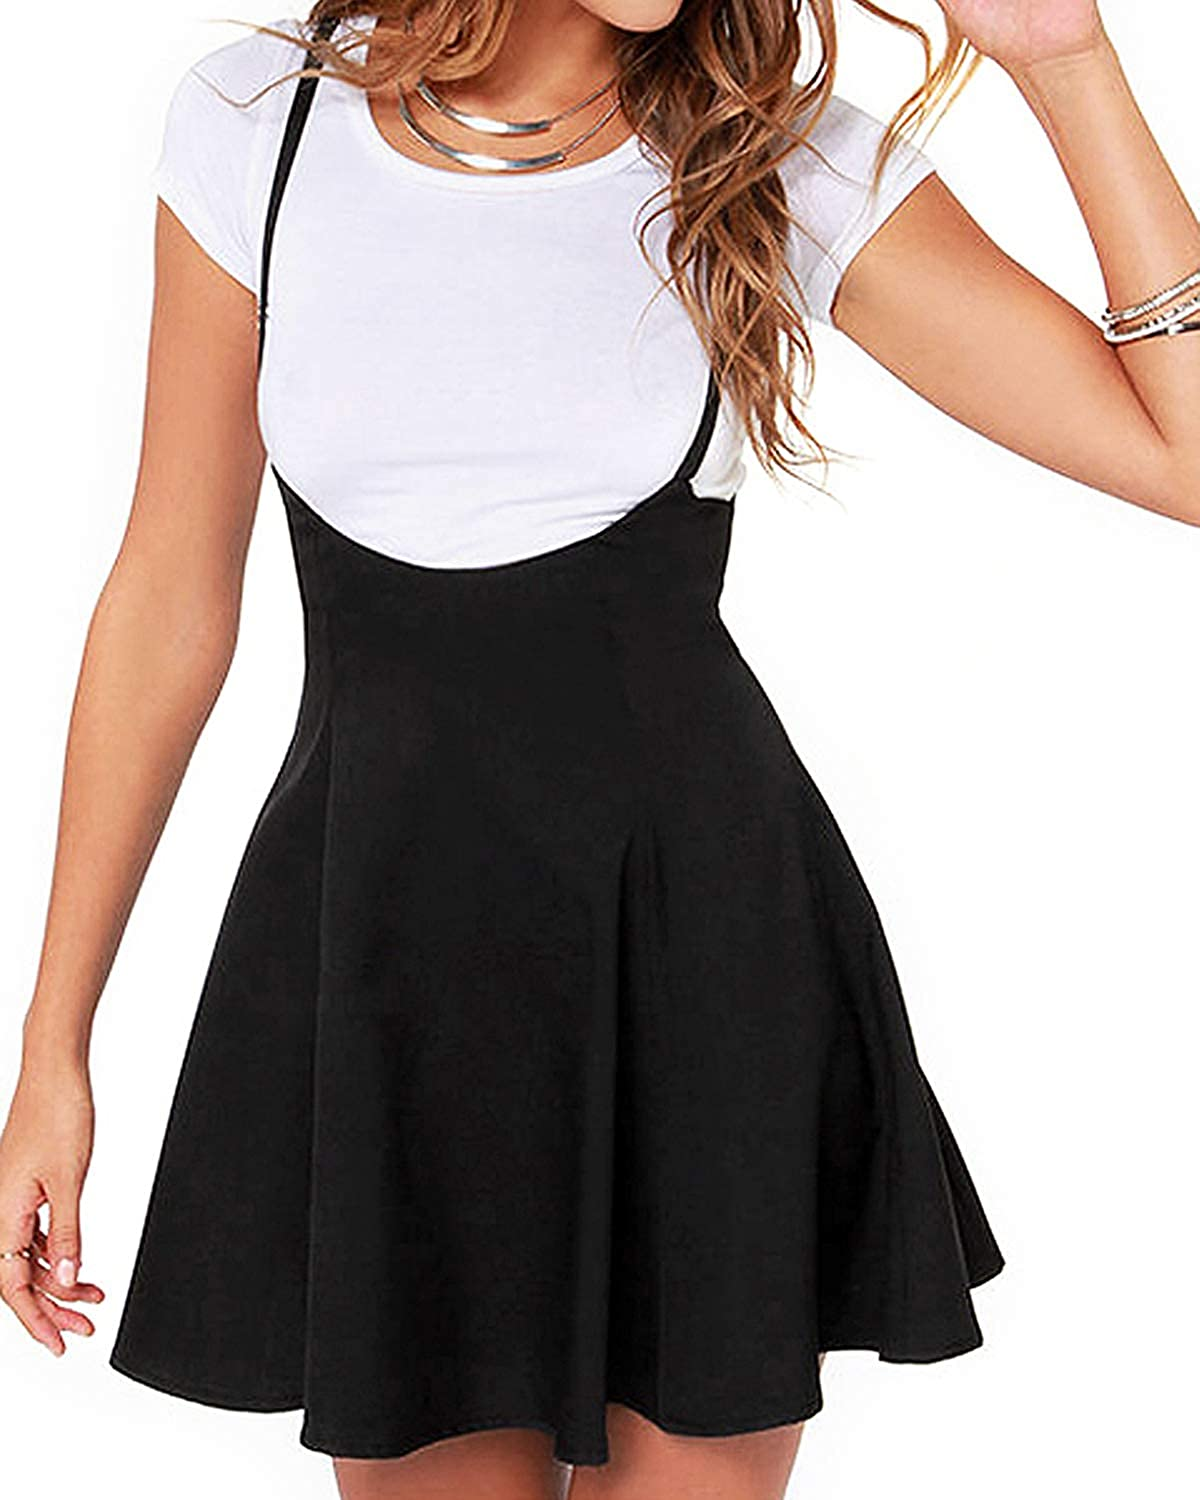 YOINS Women's Suspender Skirts Basic High Waist Versatile Flared Skater Skirt Overall Dress